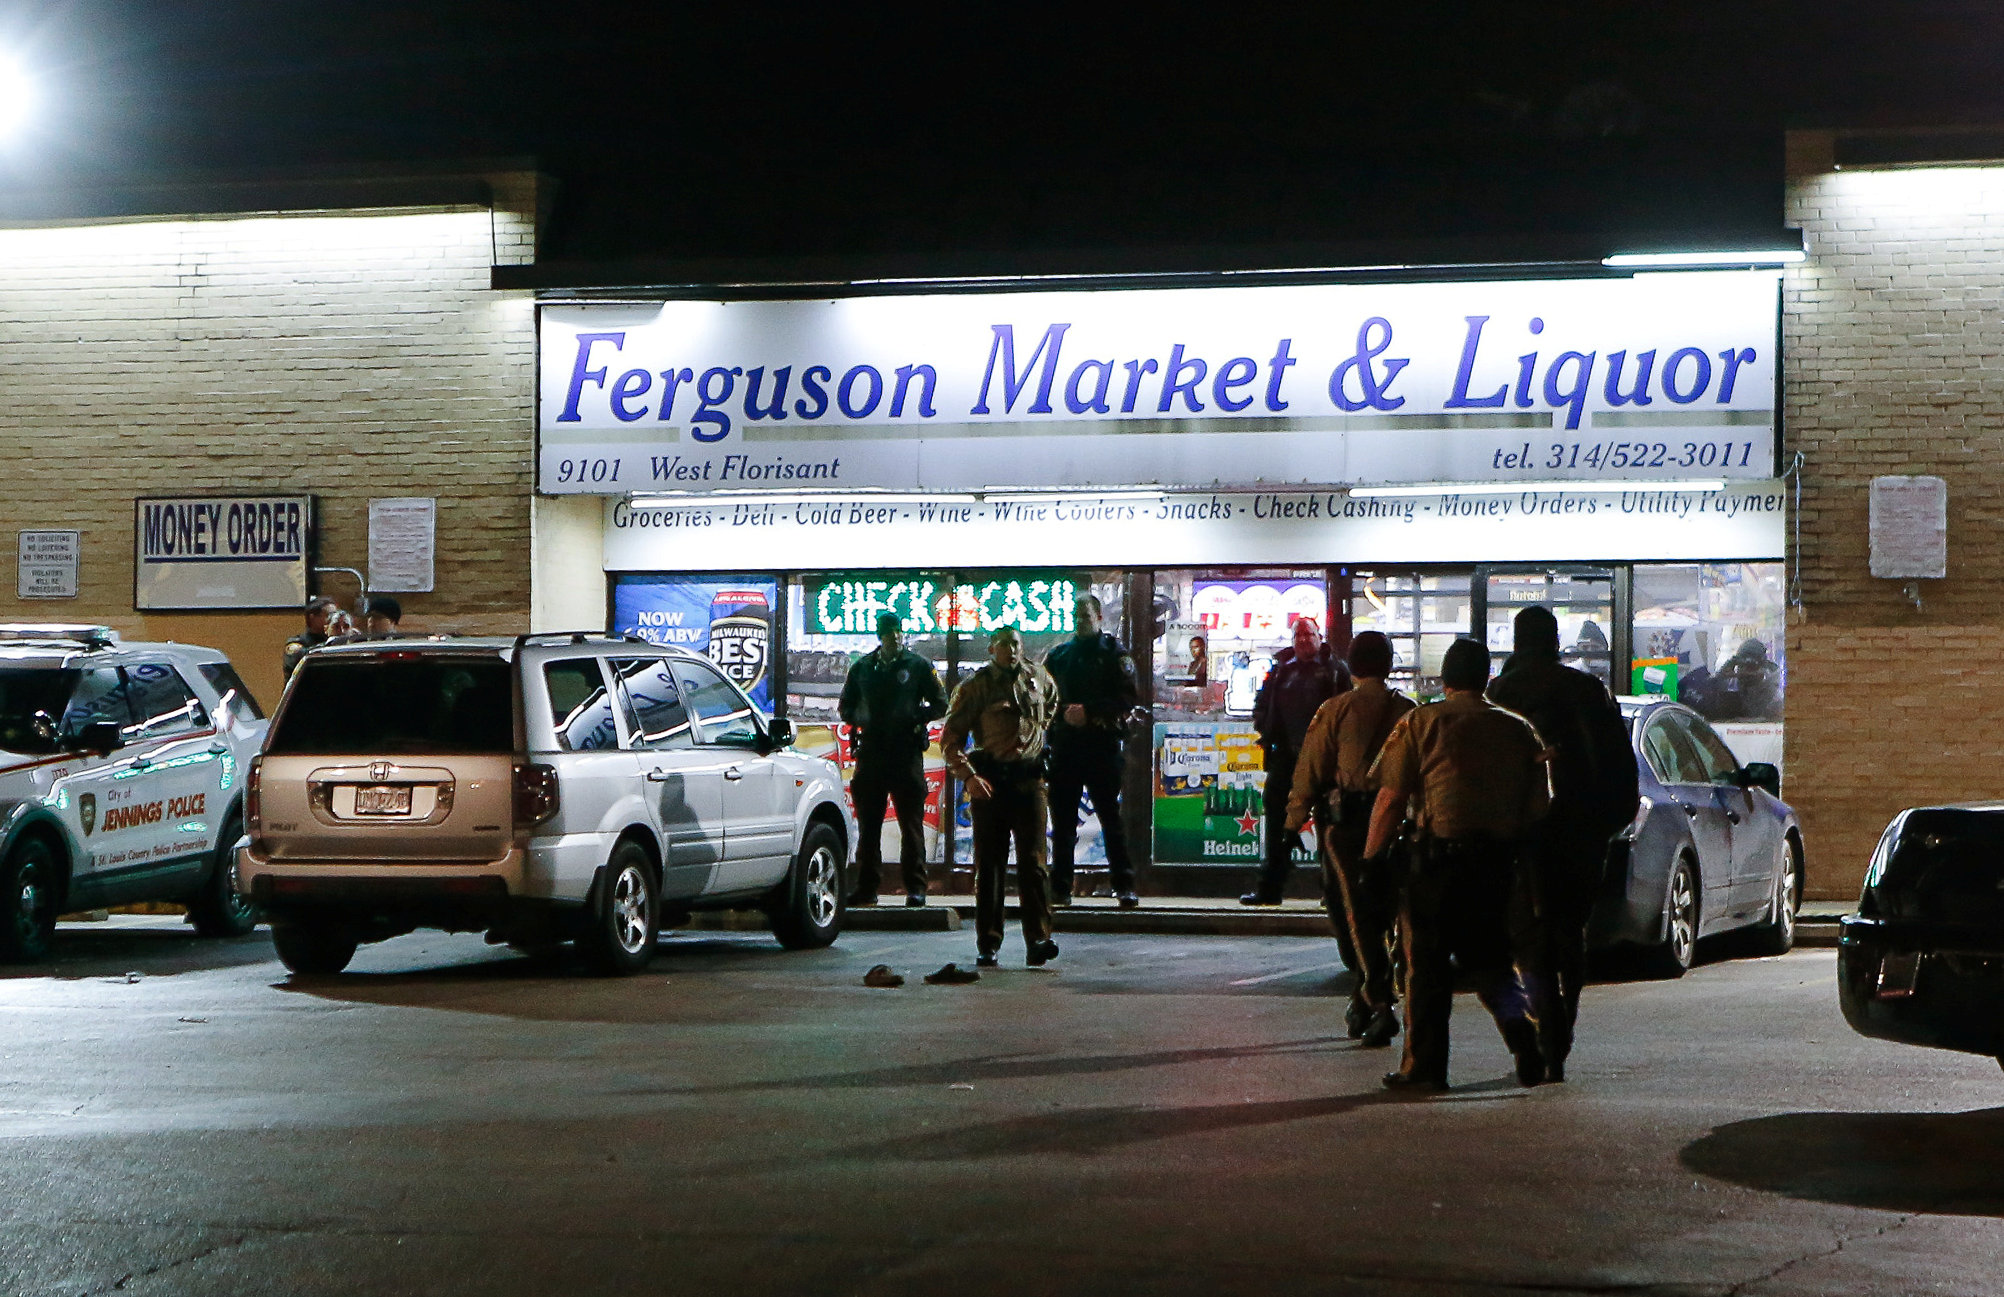 Police line up in front of the Ferguson Market Liquor during a protest, following a release of previously undisclosed video of Michael Brown